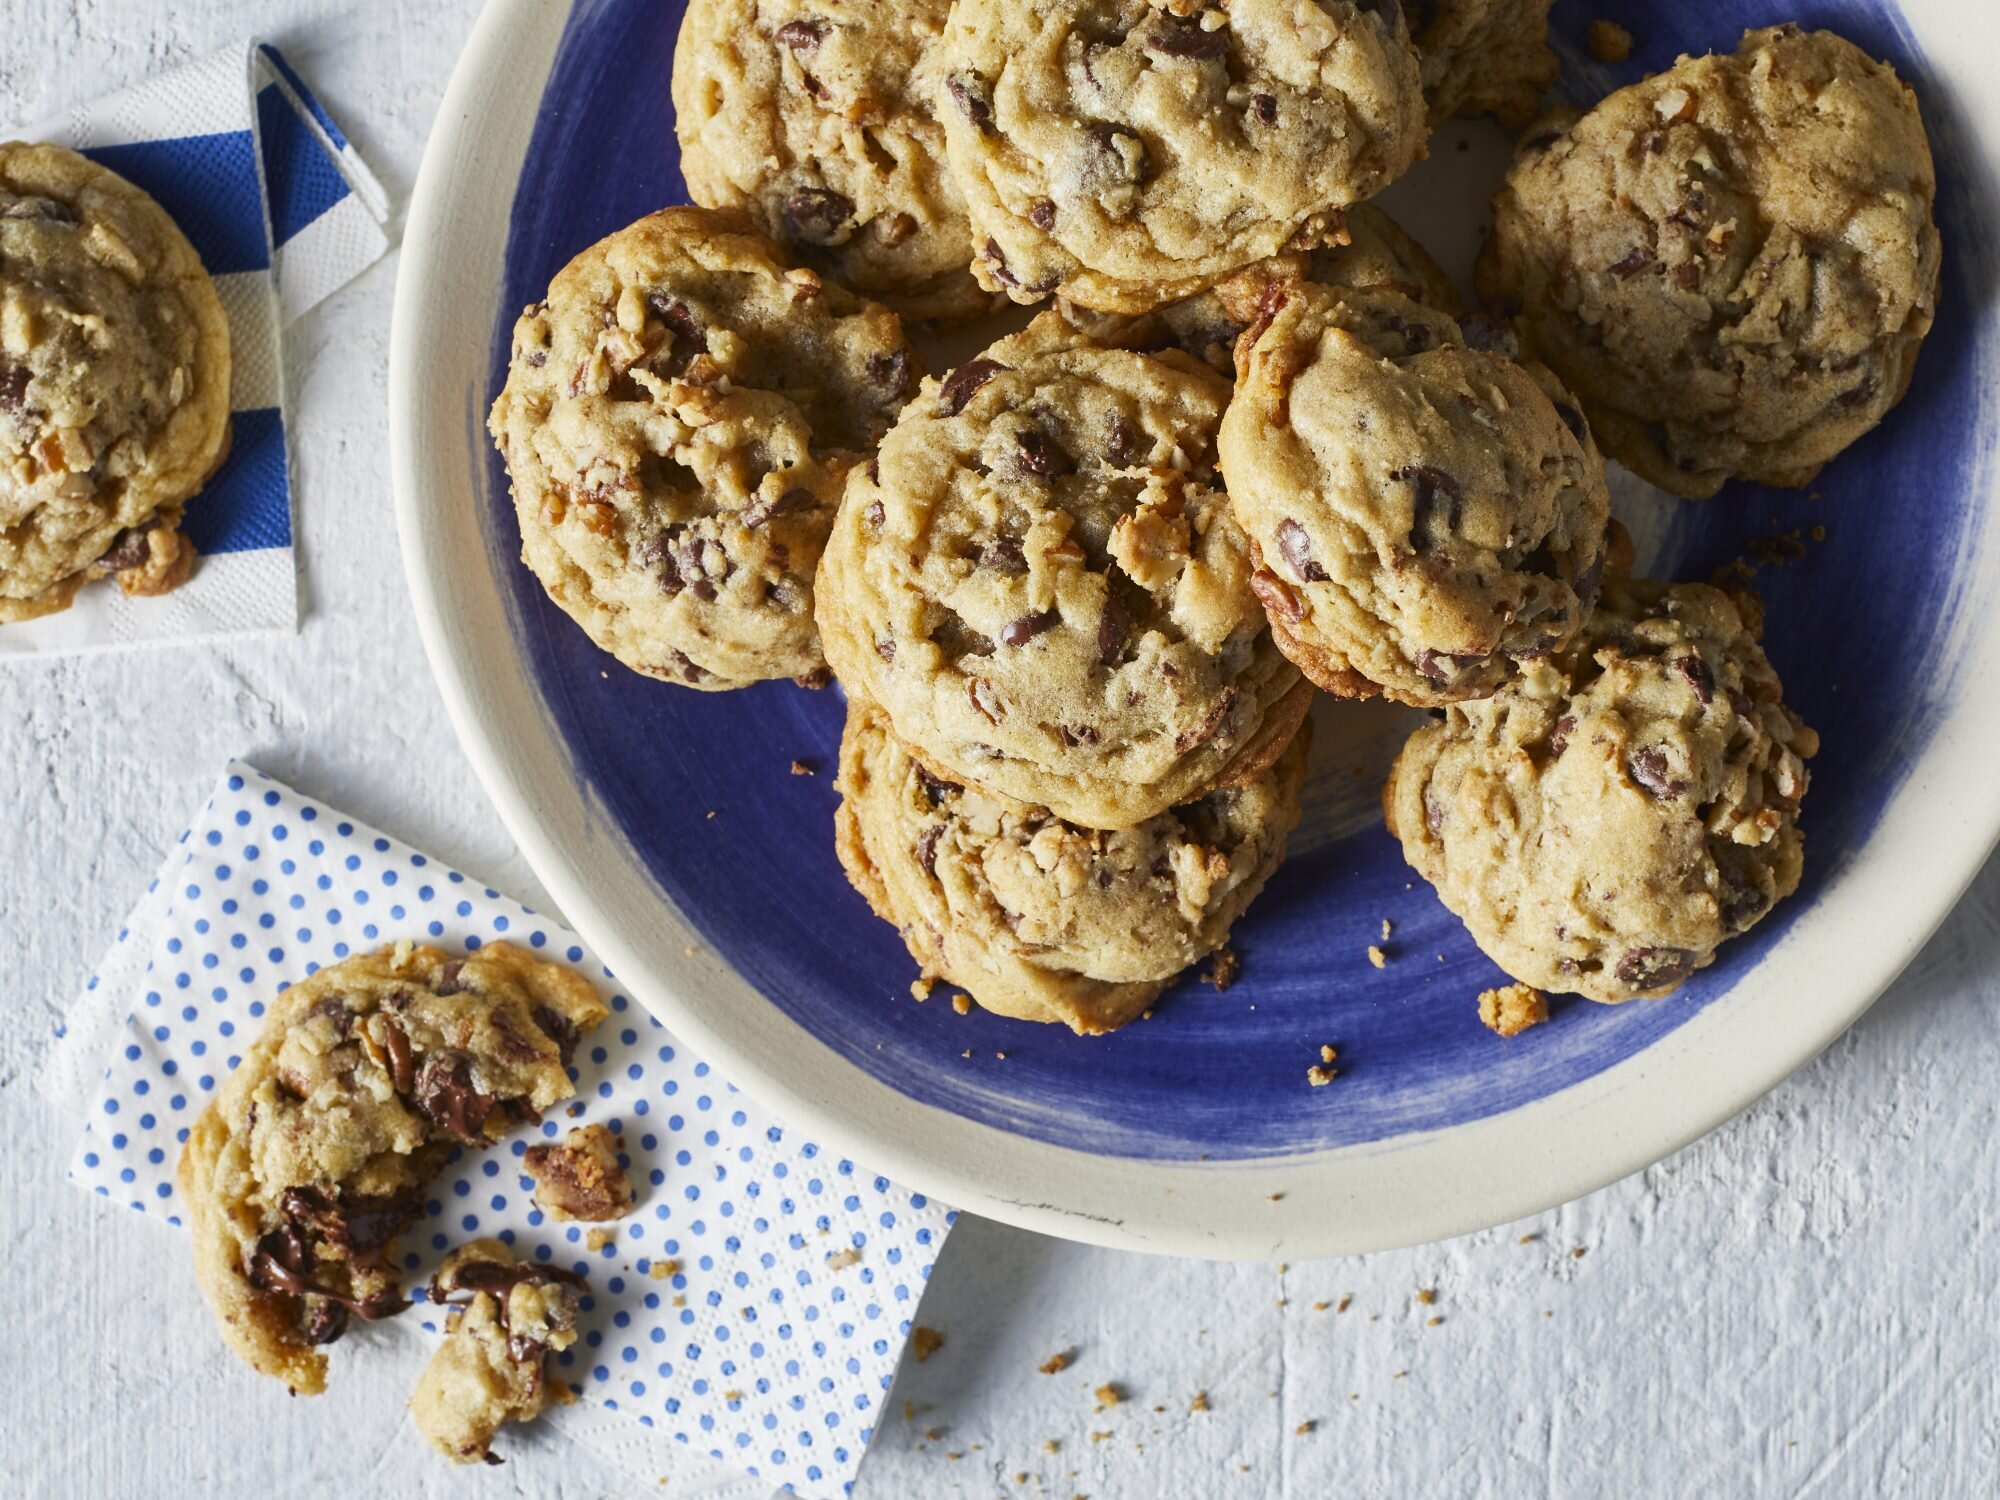 17 Classic Cookie Recipes Just Like Your Grandmother Used To